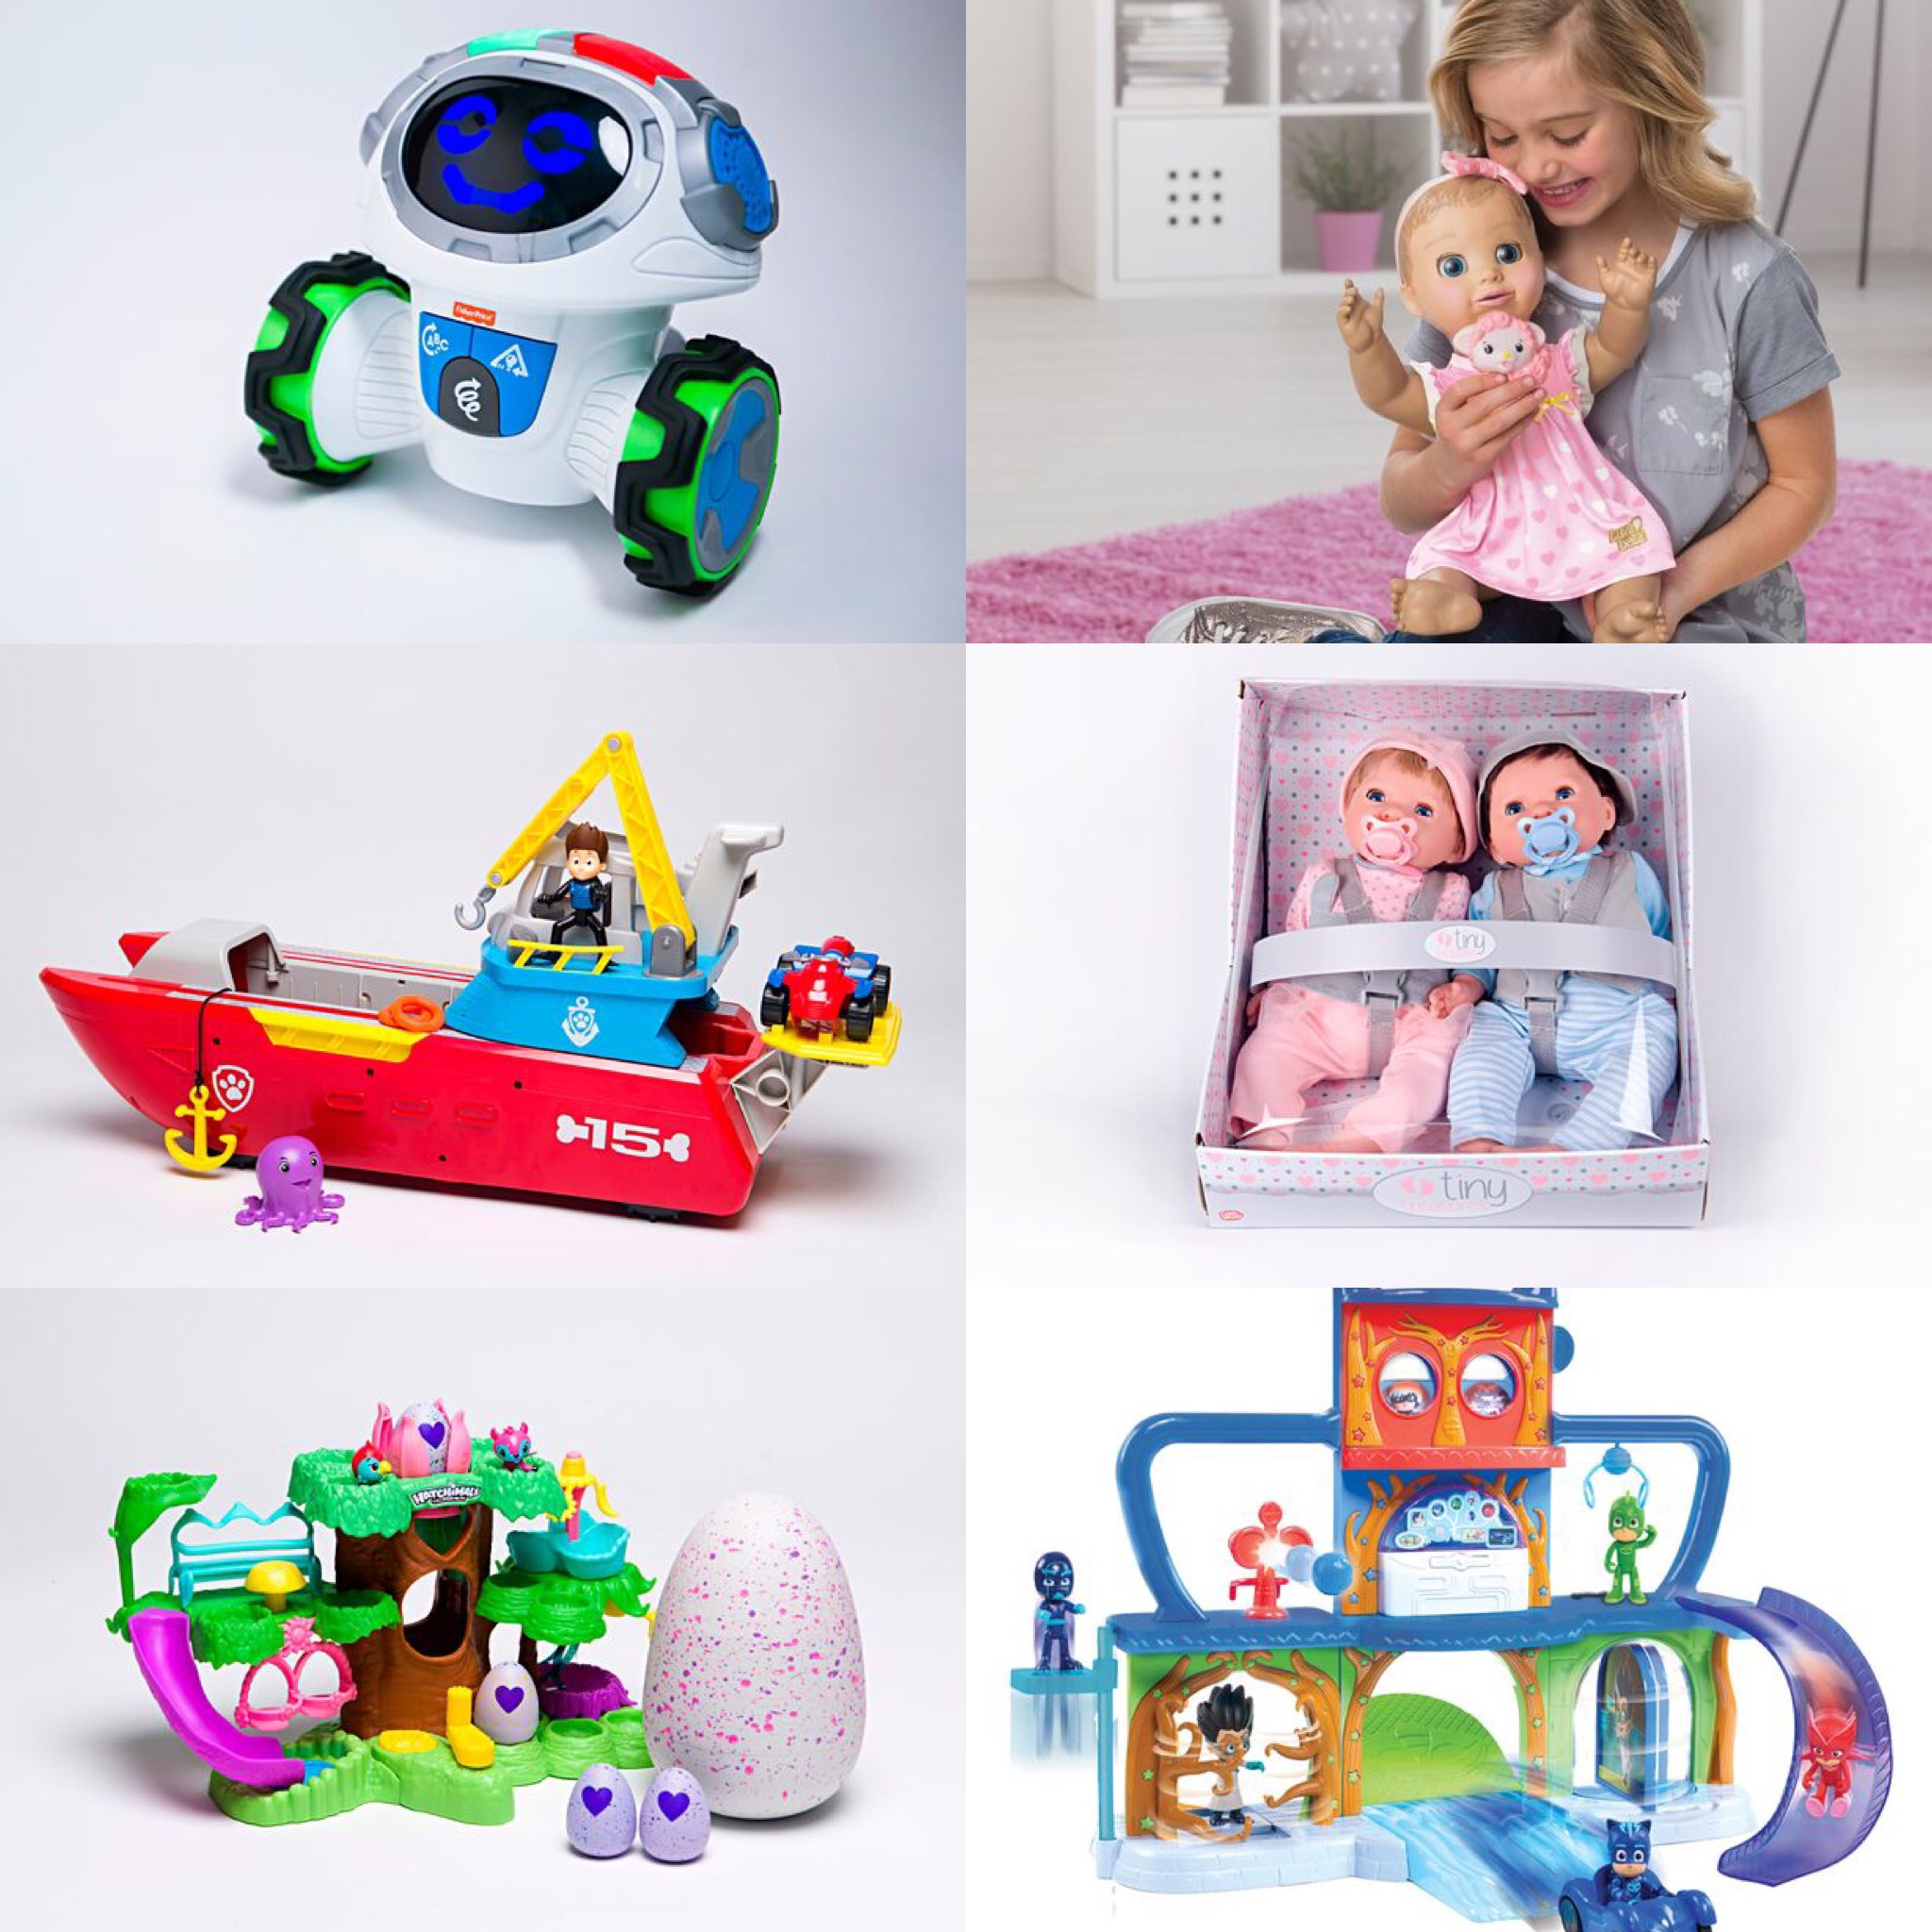 Toys At Christmas : Argos toy predictions for christmas the little